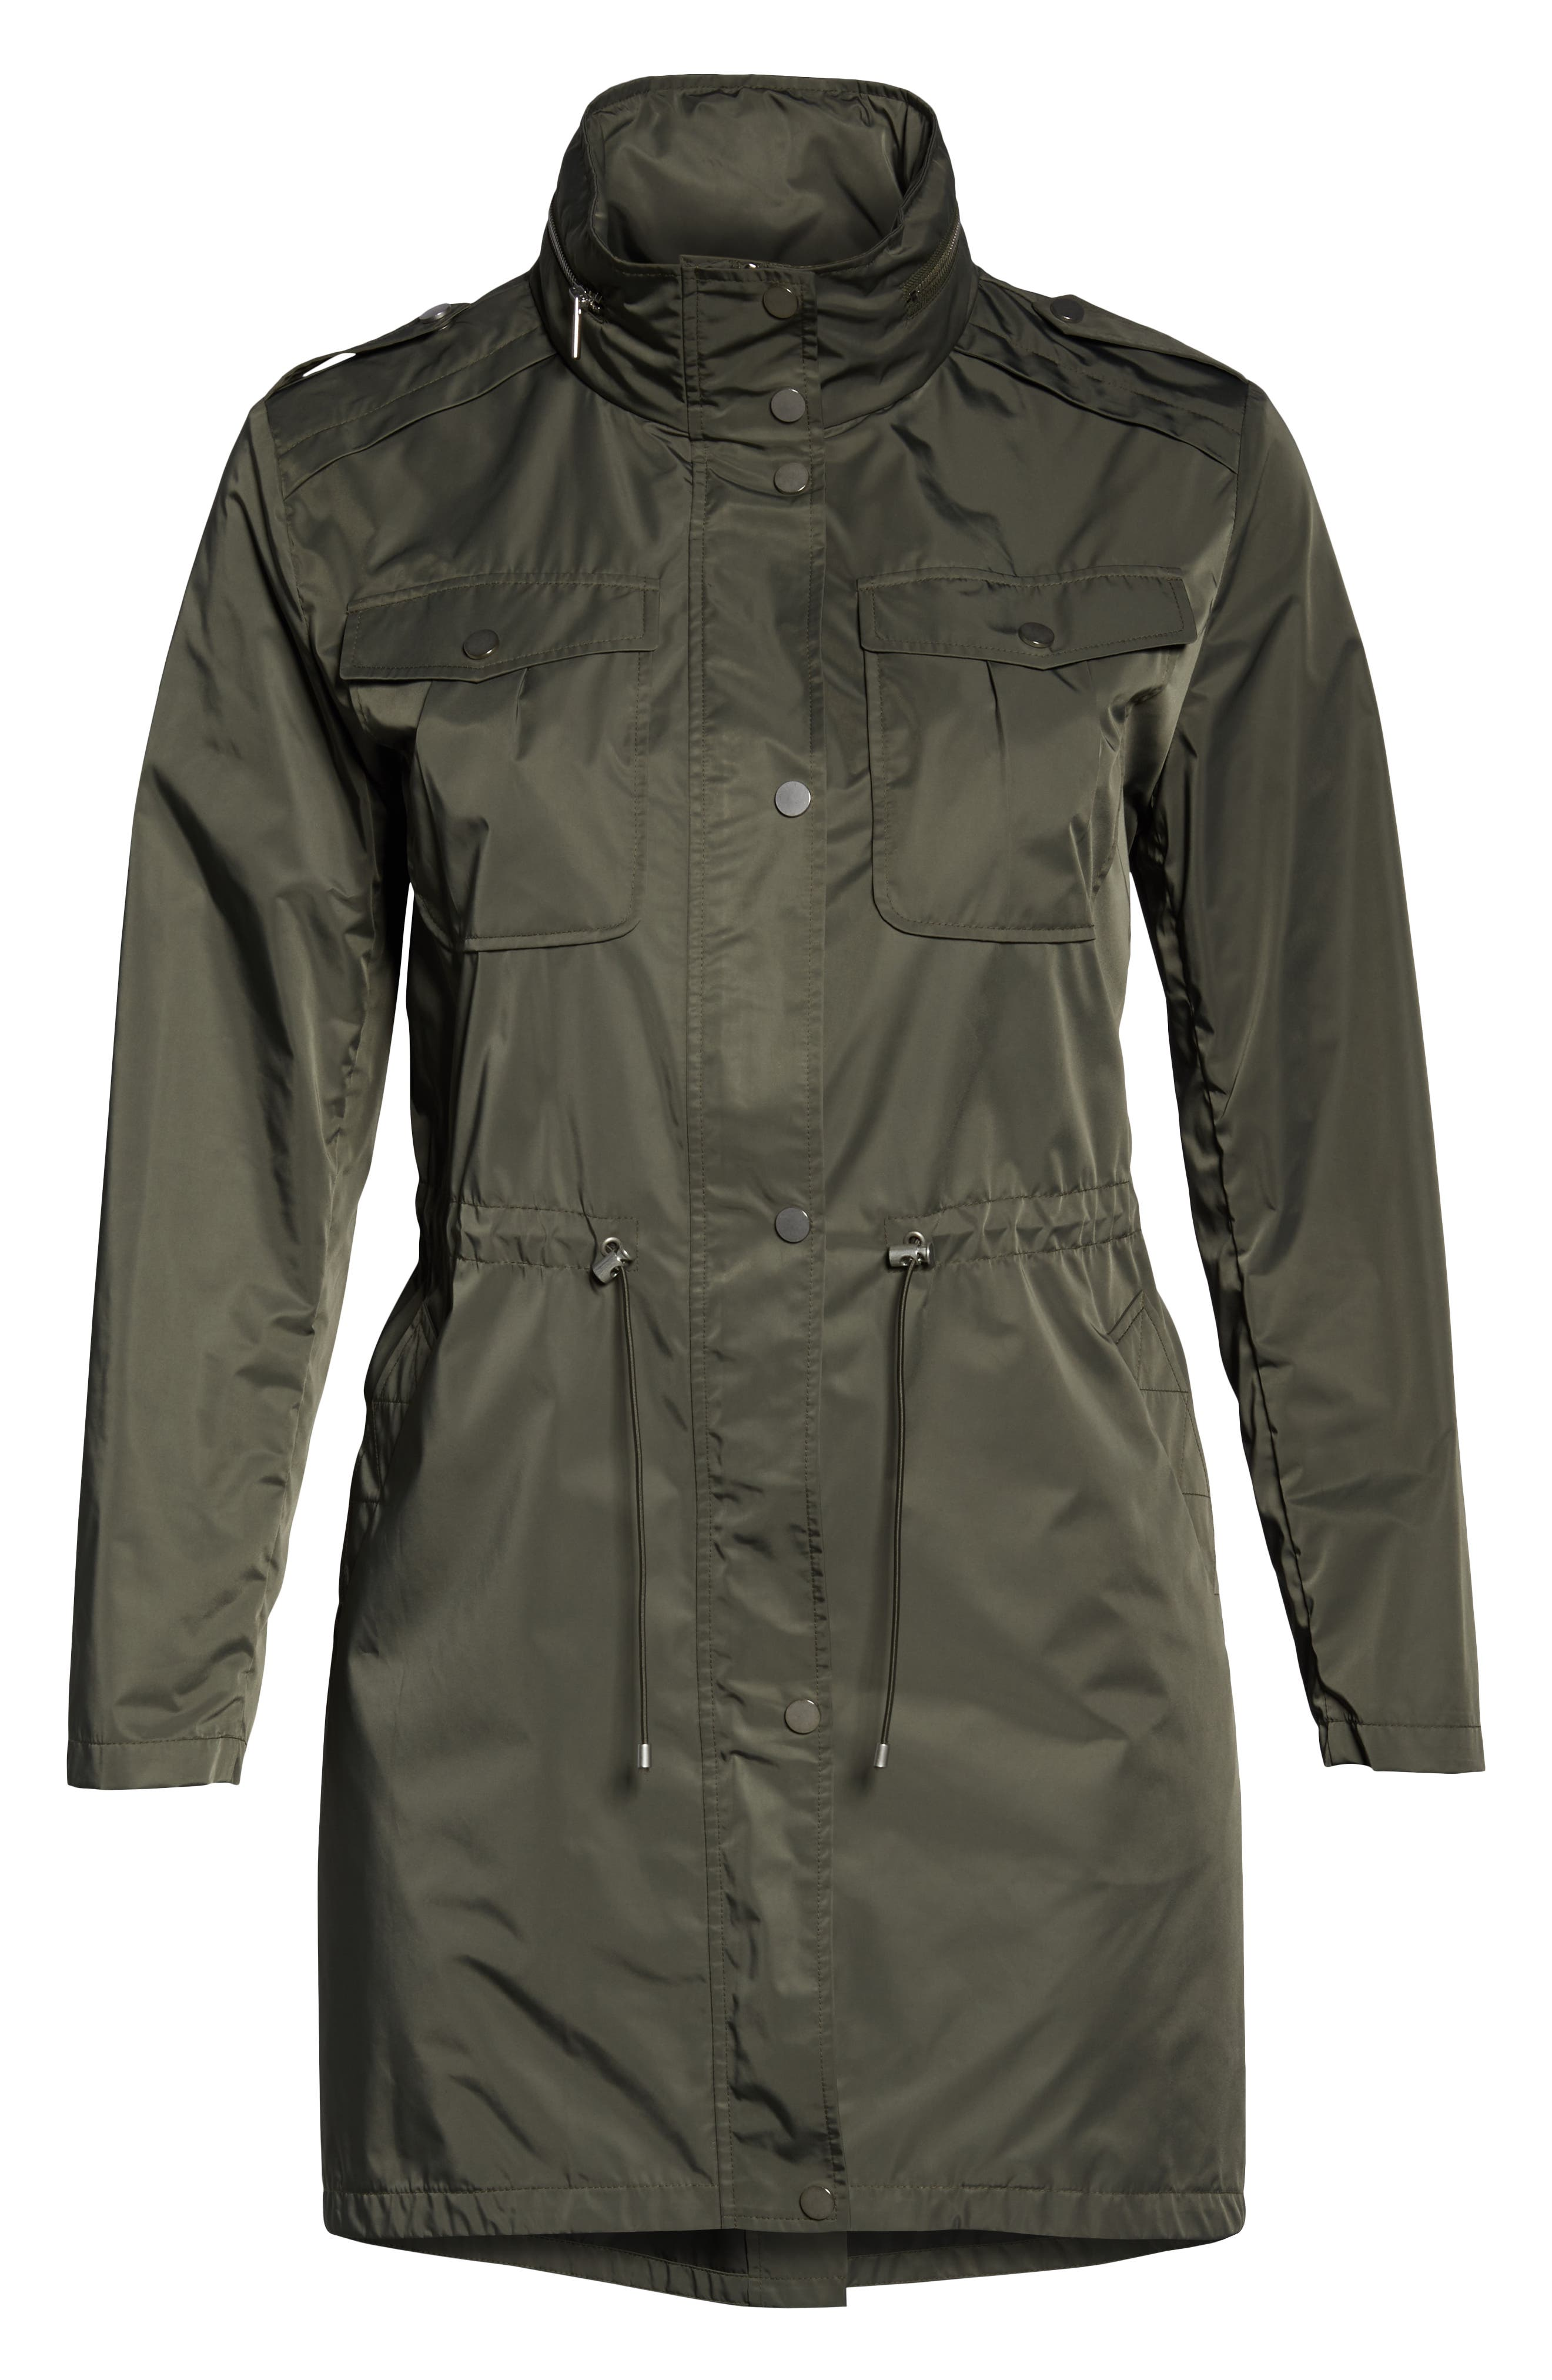 Badgley Mischka Dakota Raincoat,                             Alternate thumbnail 6, color,                             PALM